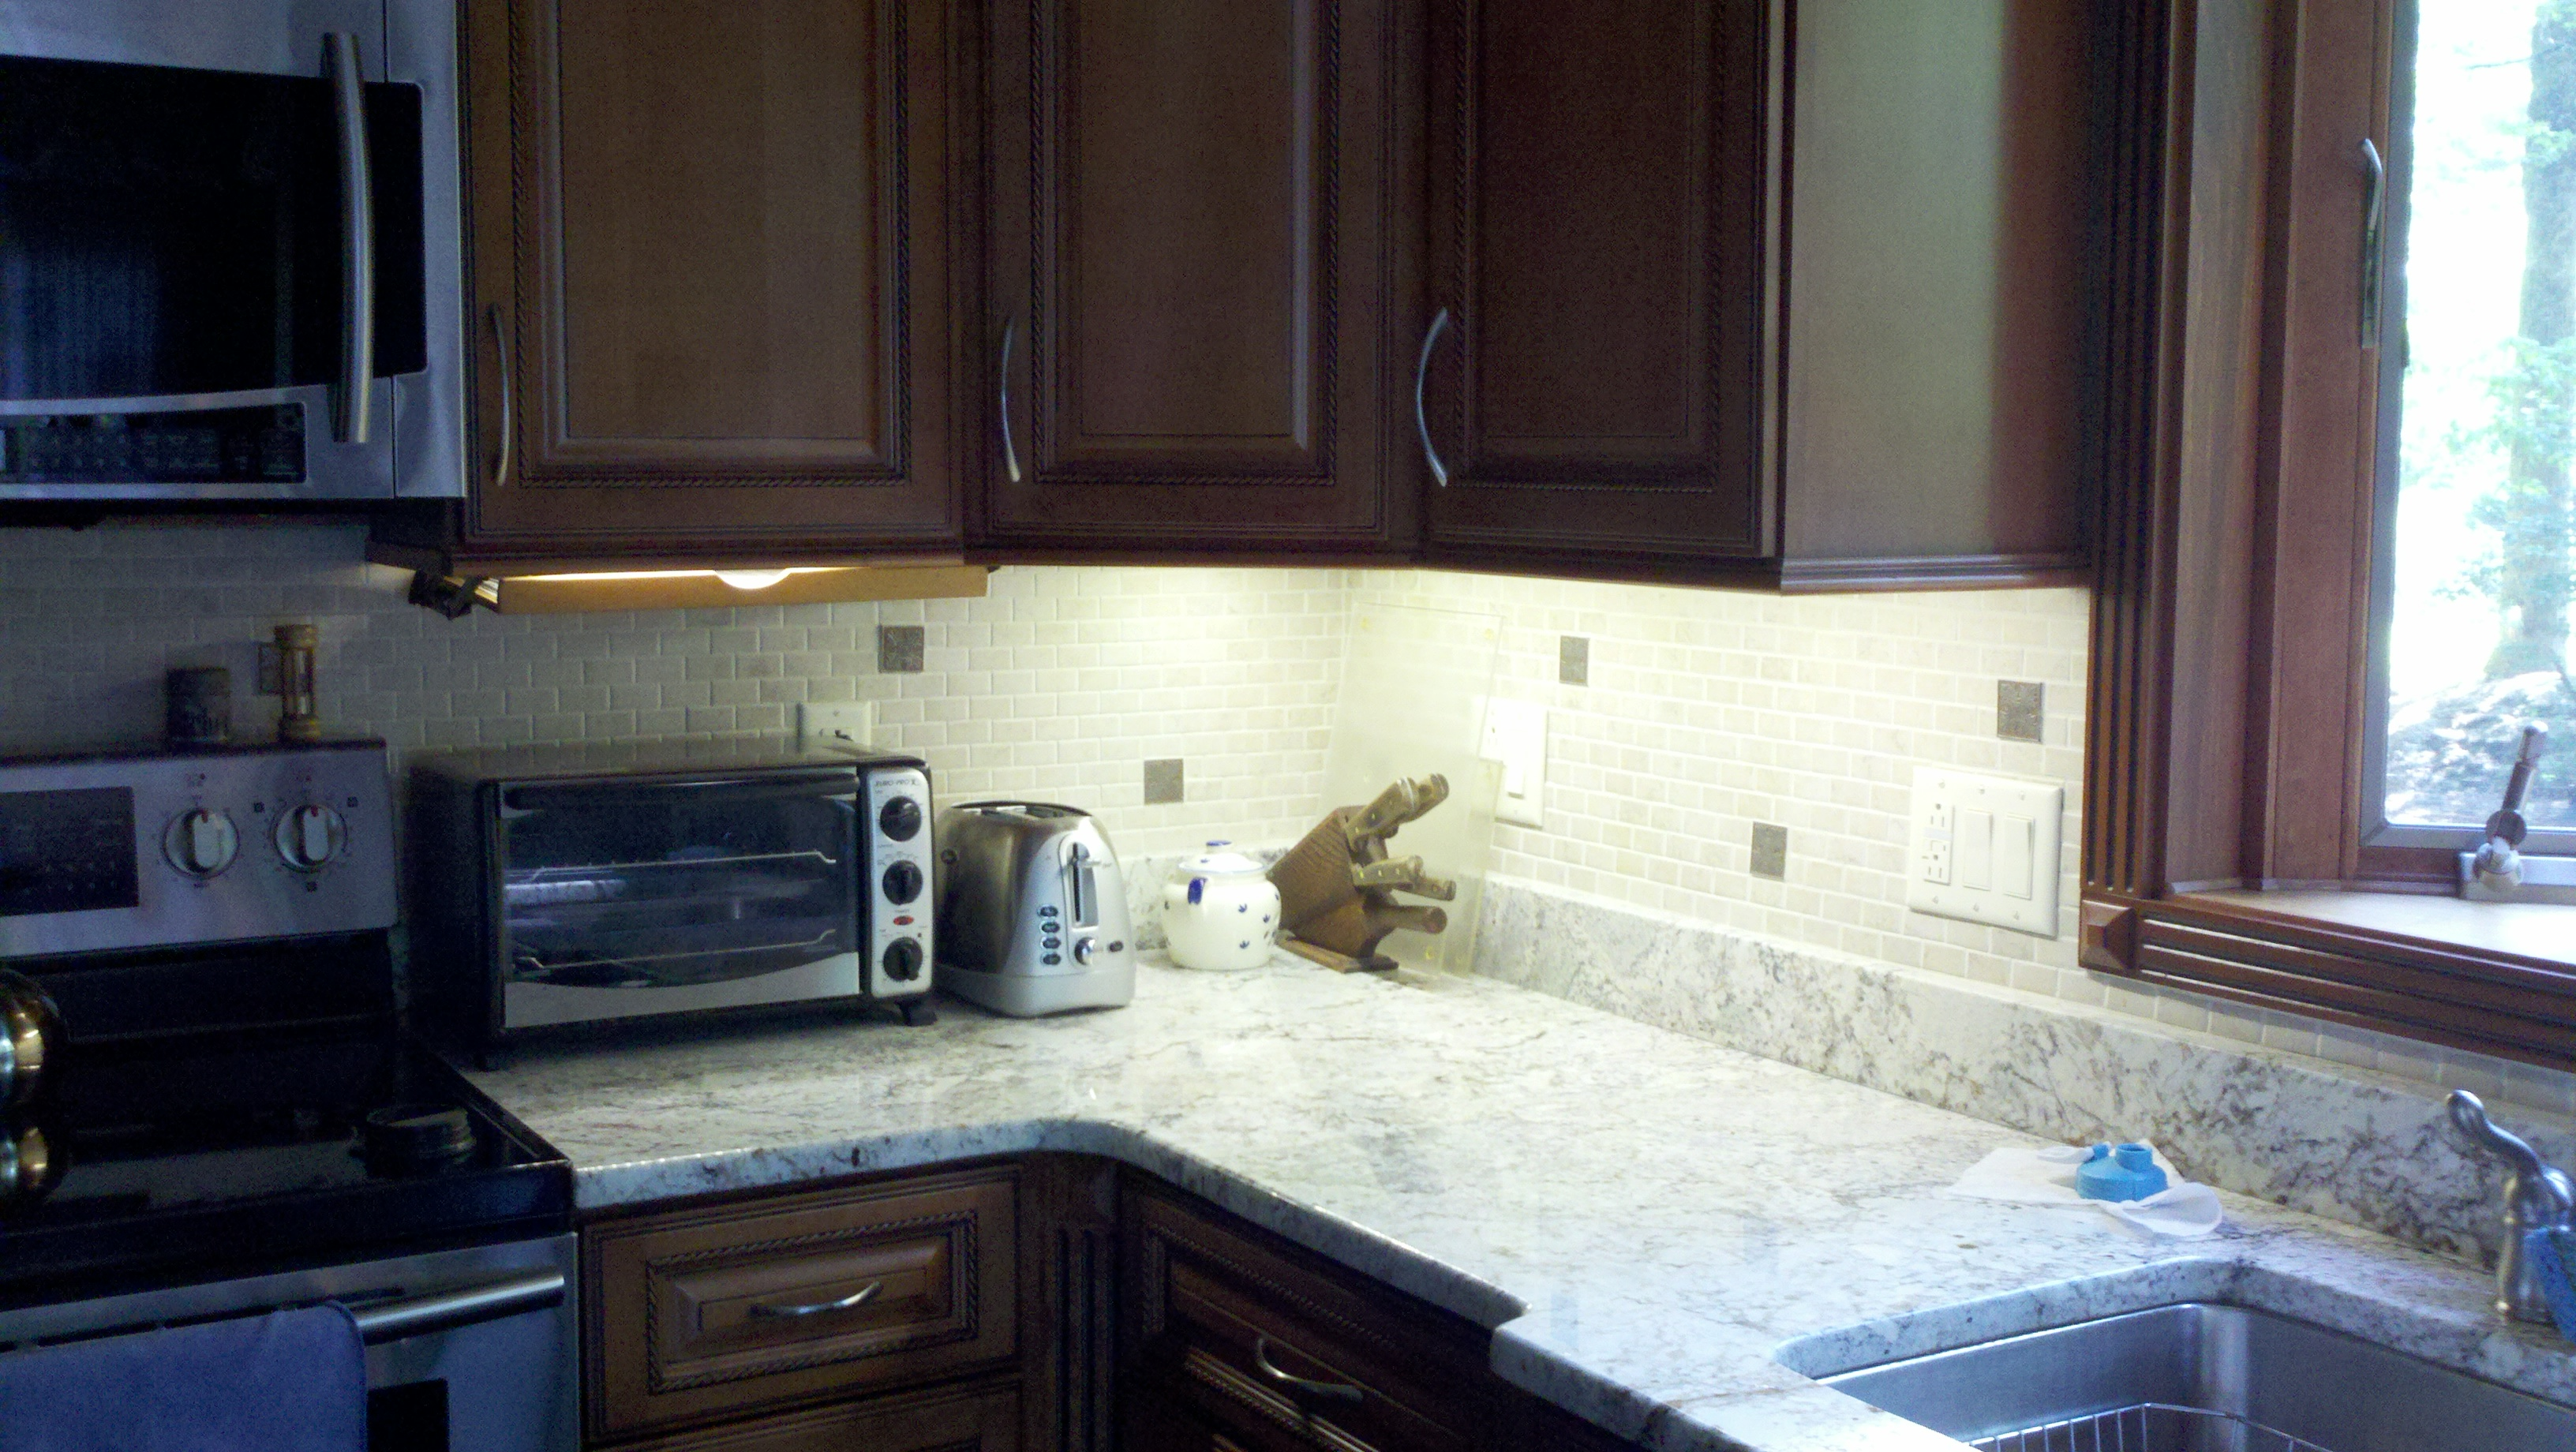 HowTo: Make Your Own Beautiful Under Cabinet LED Lights | Reviews ...